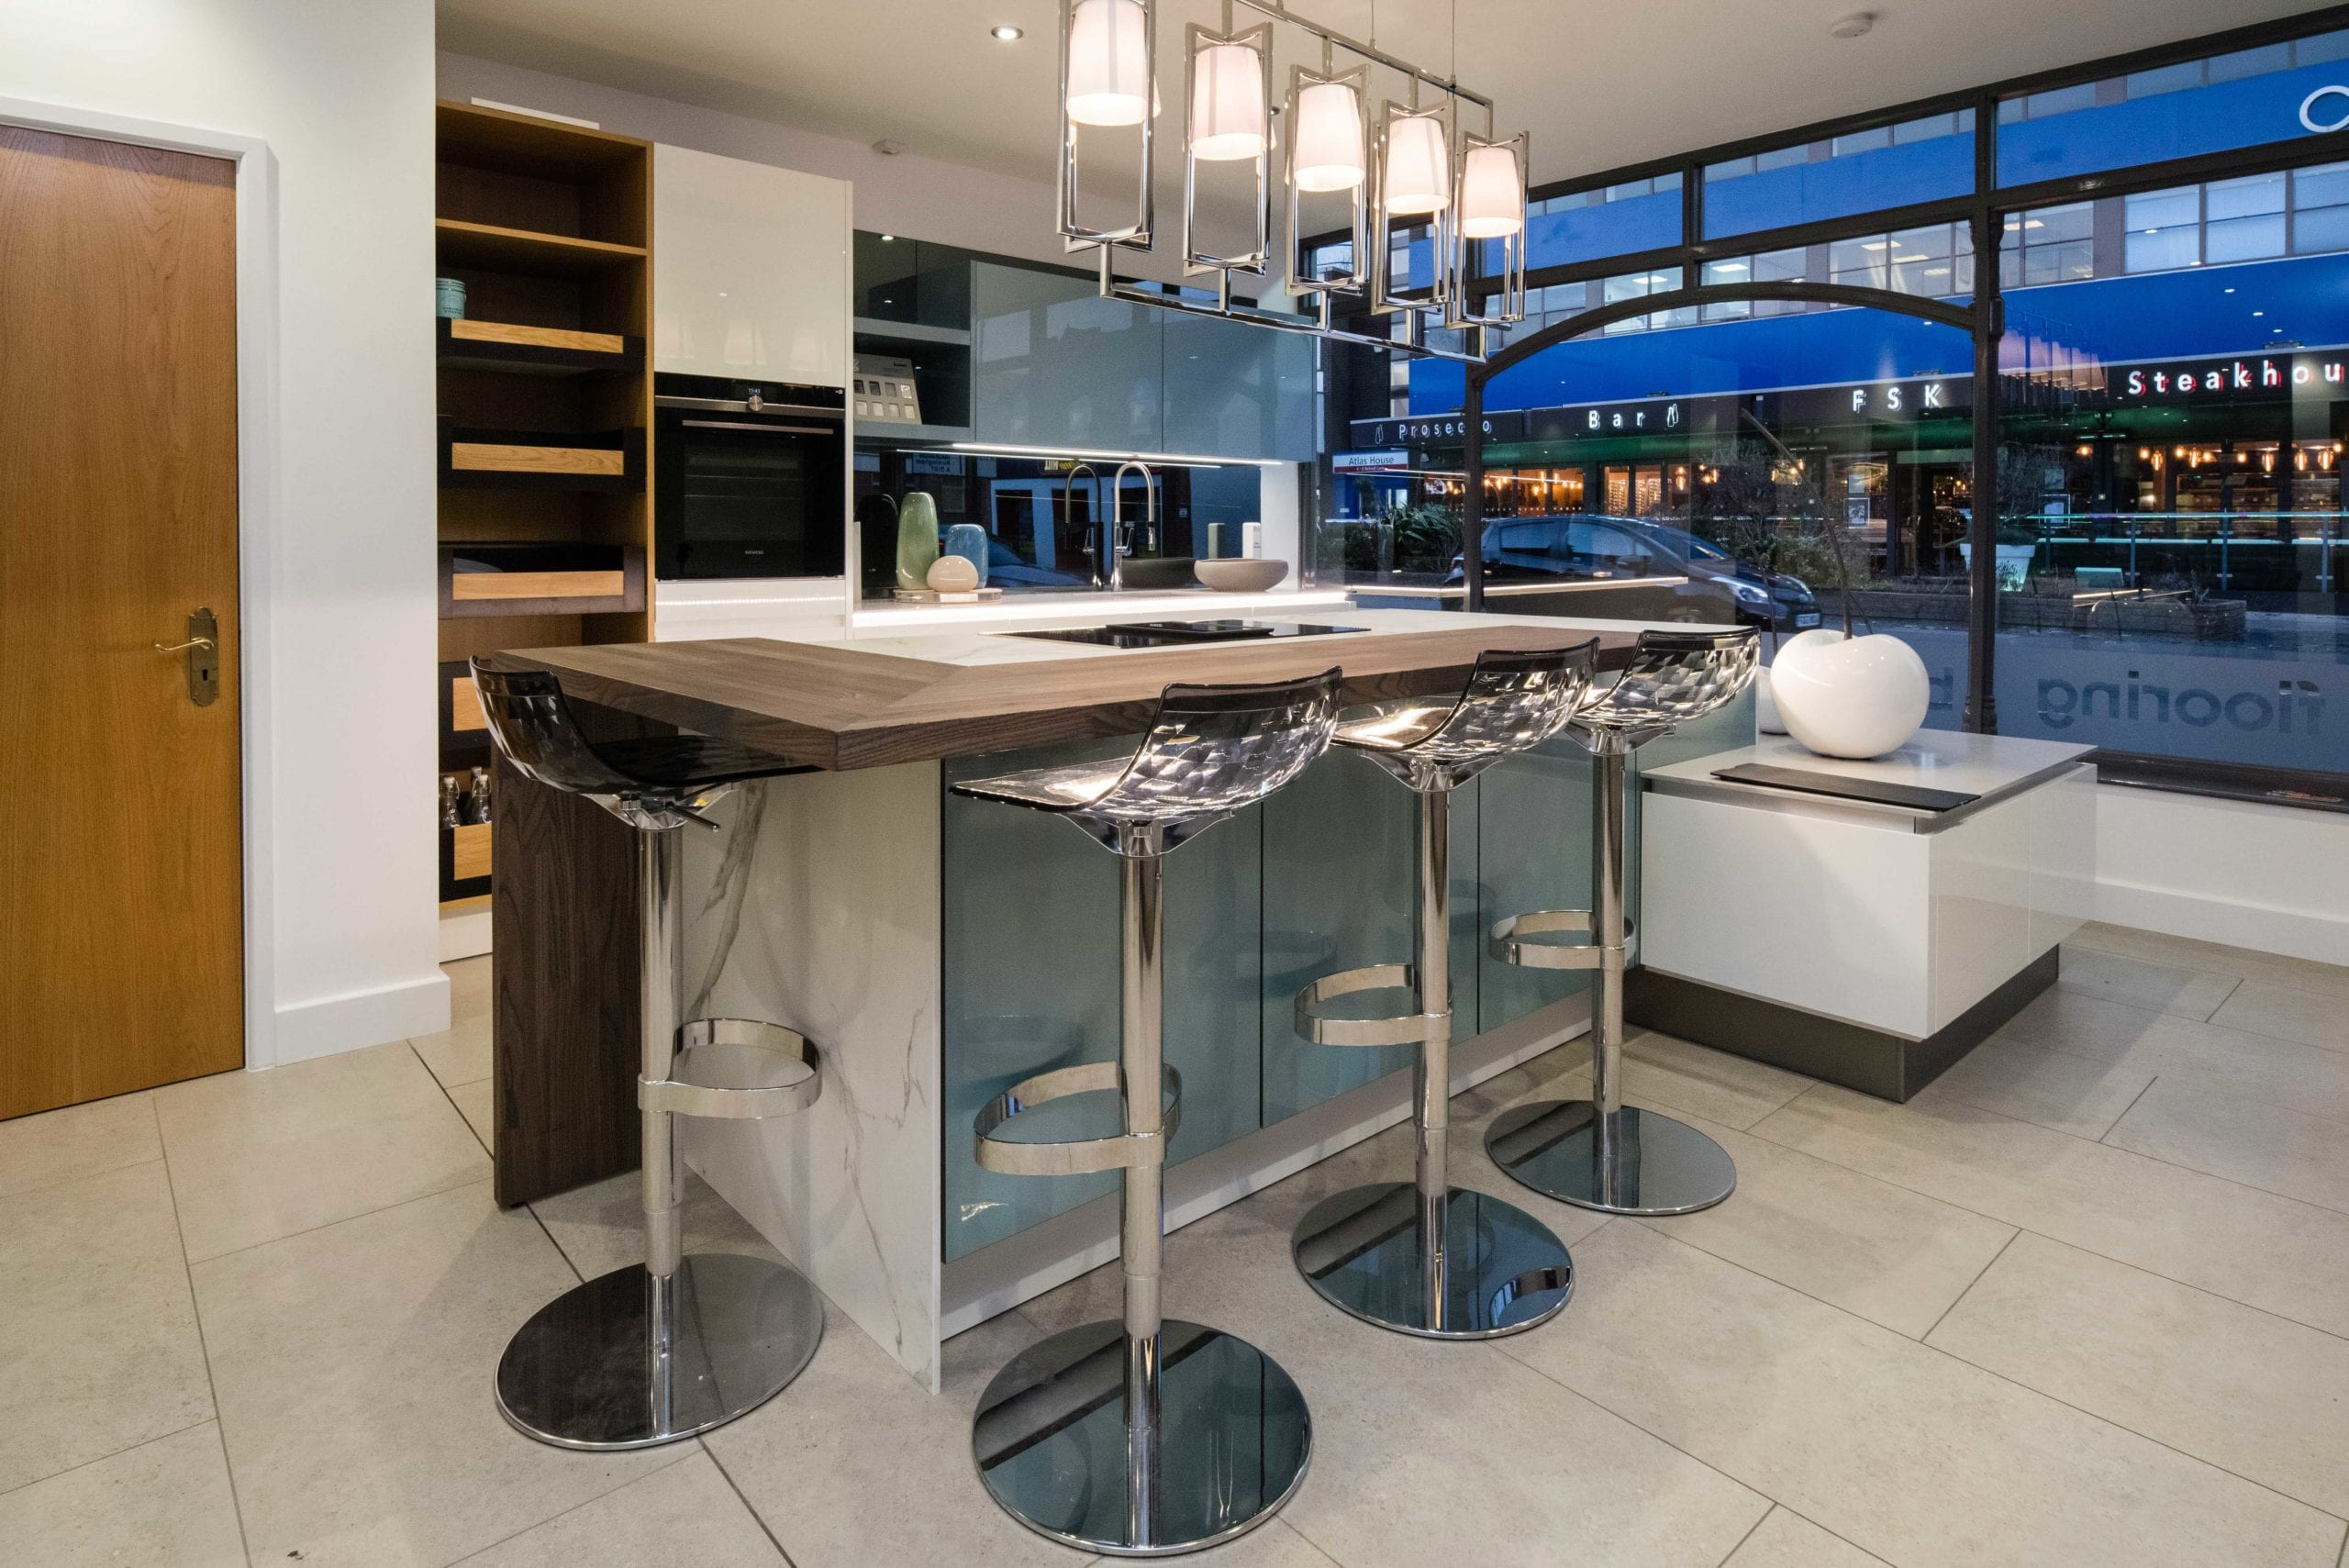 Display 1 intoto kitchen Nov 17 2 1 scaled   Qudaus Living, Sutton Coldfield